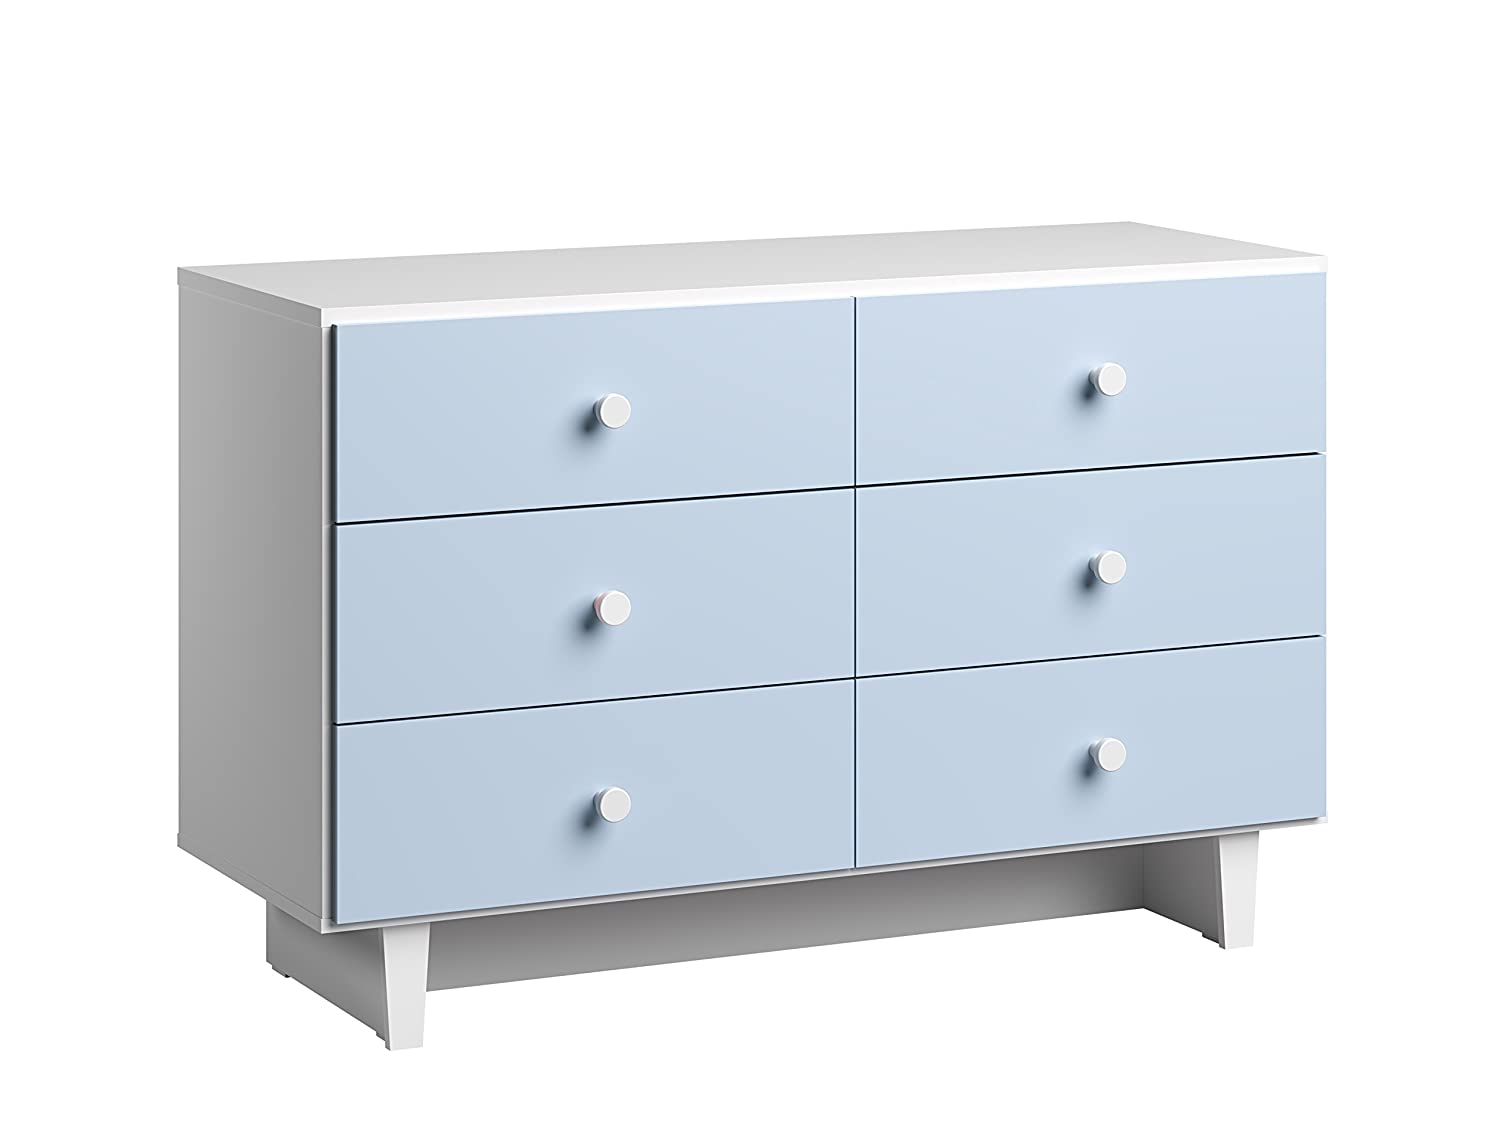 Amazon.com: Little chavo Comfort fino Dresser: Kitchen & Dining